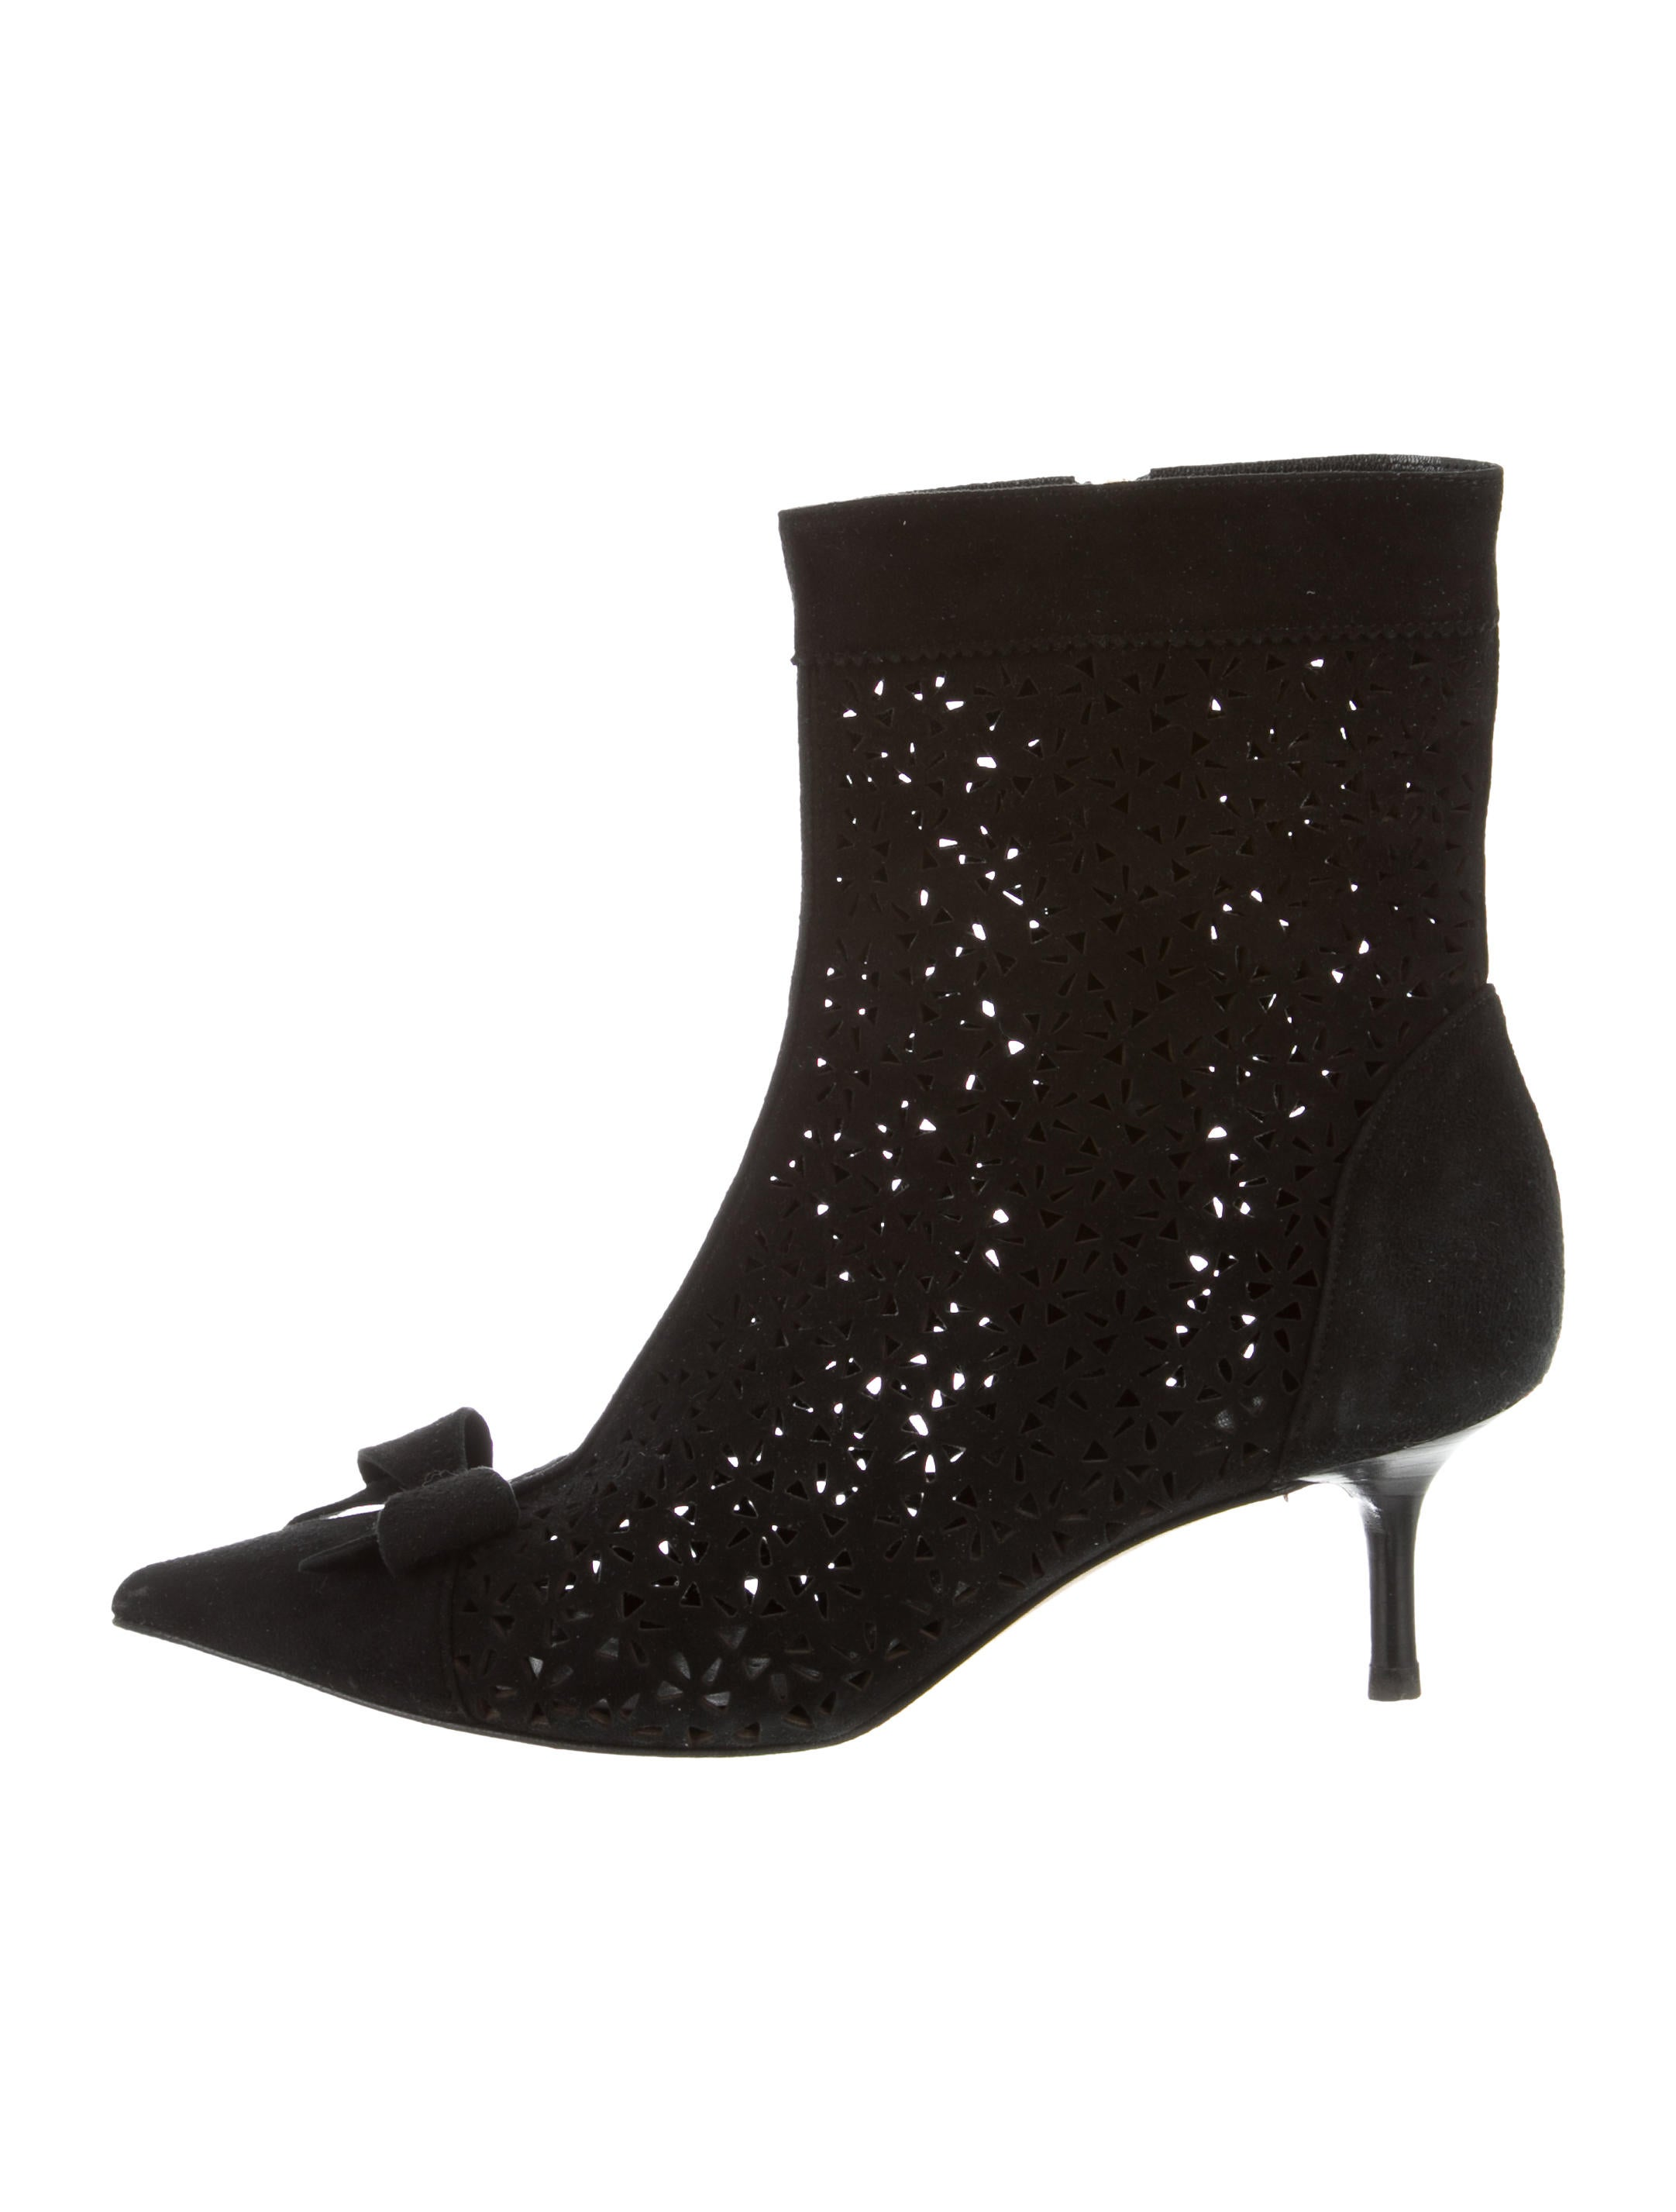 Kate Spade New York Laser Cut Pointed-Toe Ankle Boots outlet discount outlet store for sale HZhu7WUk8